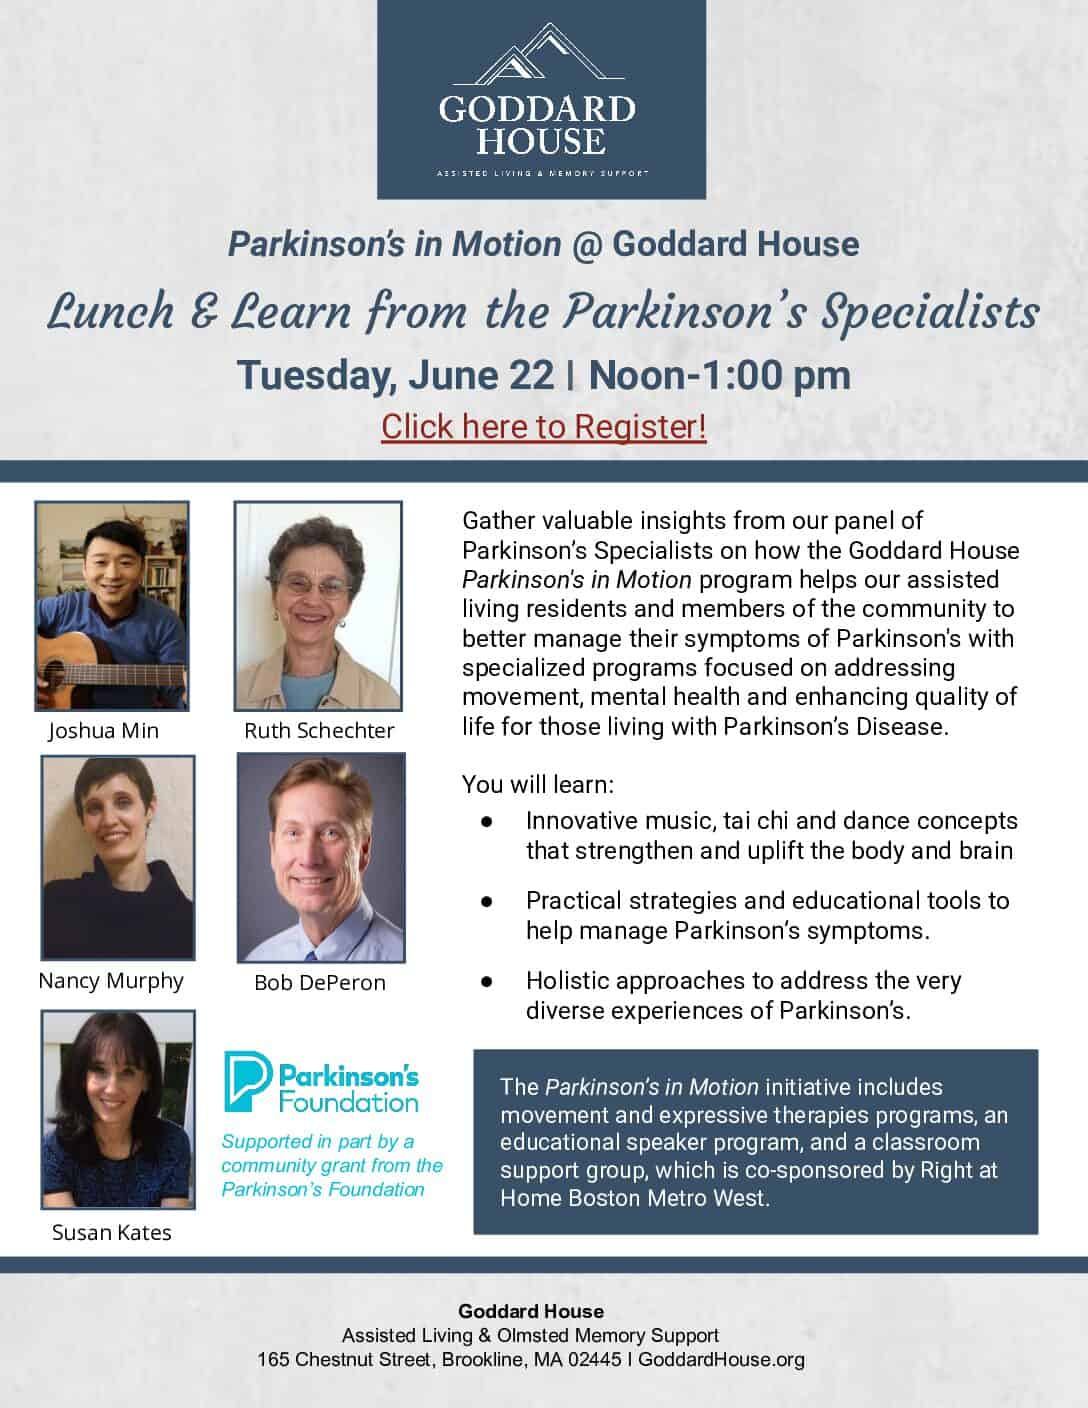 Lunch and Learn from the Parkinson's Specialists